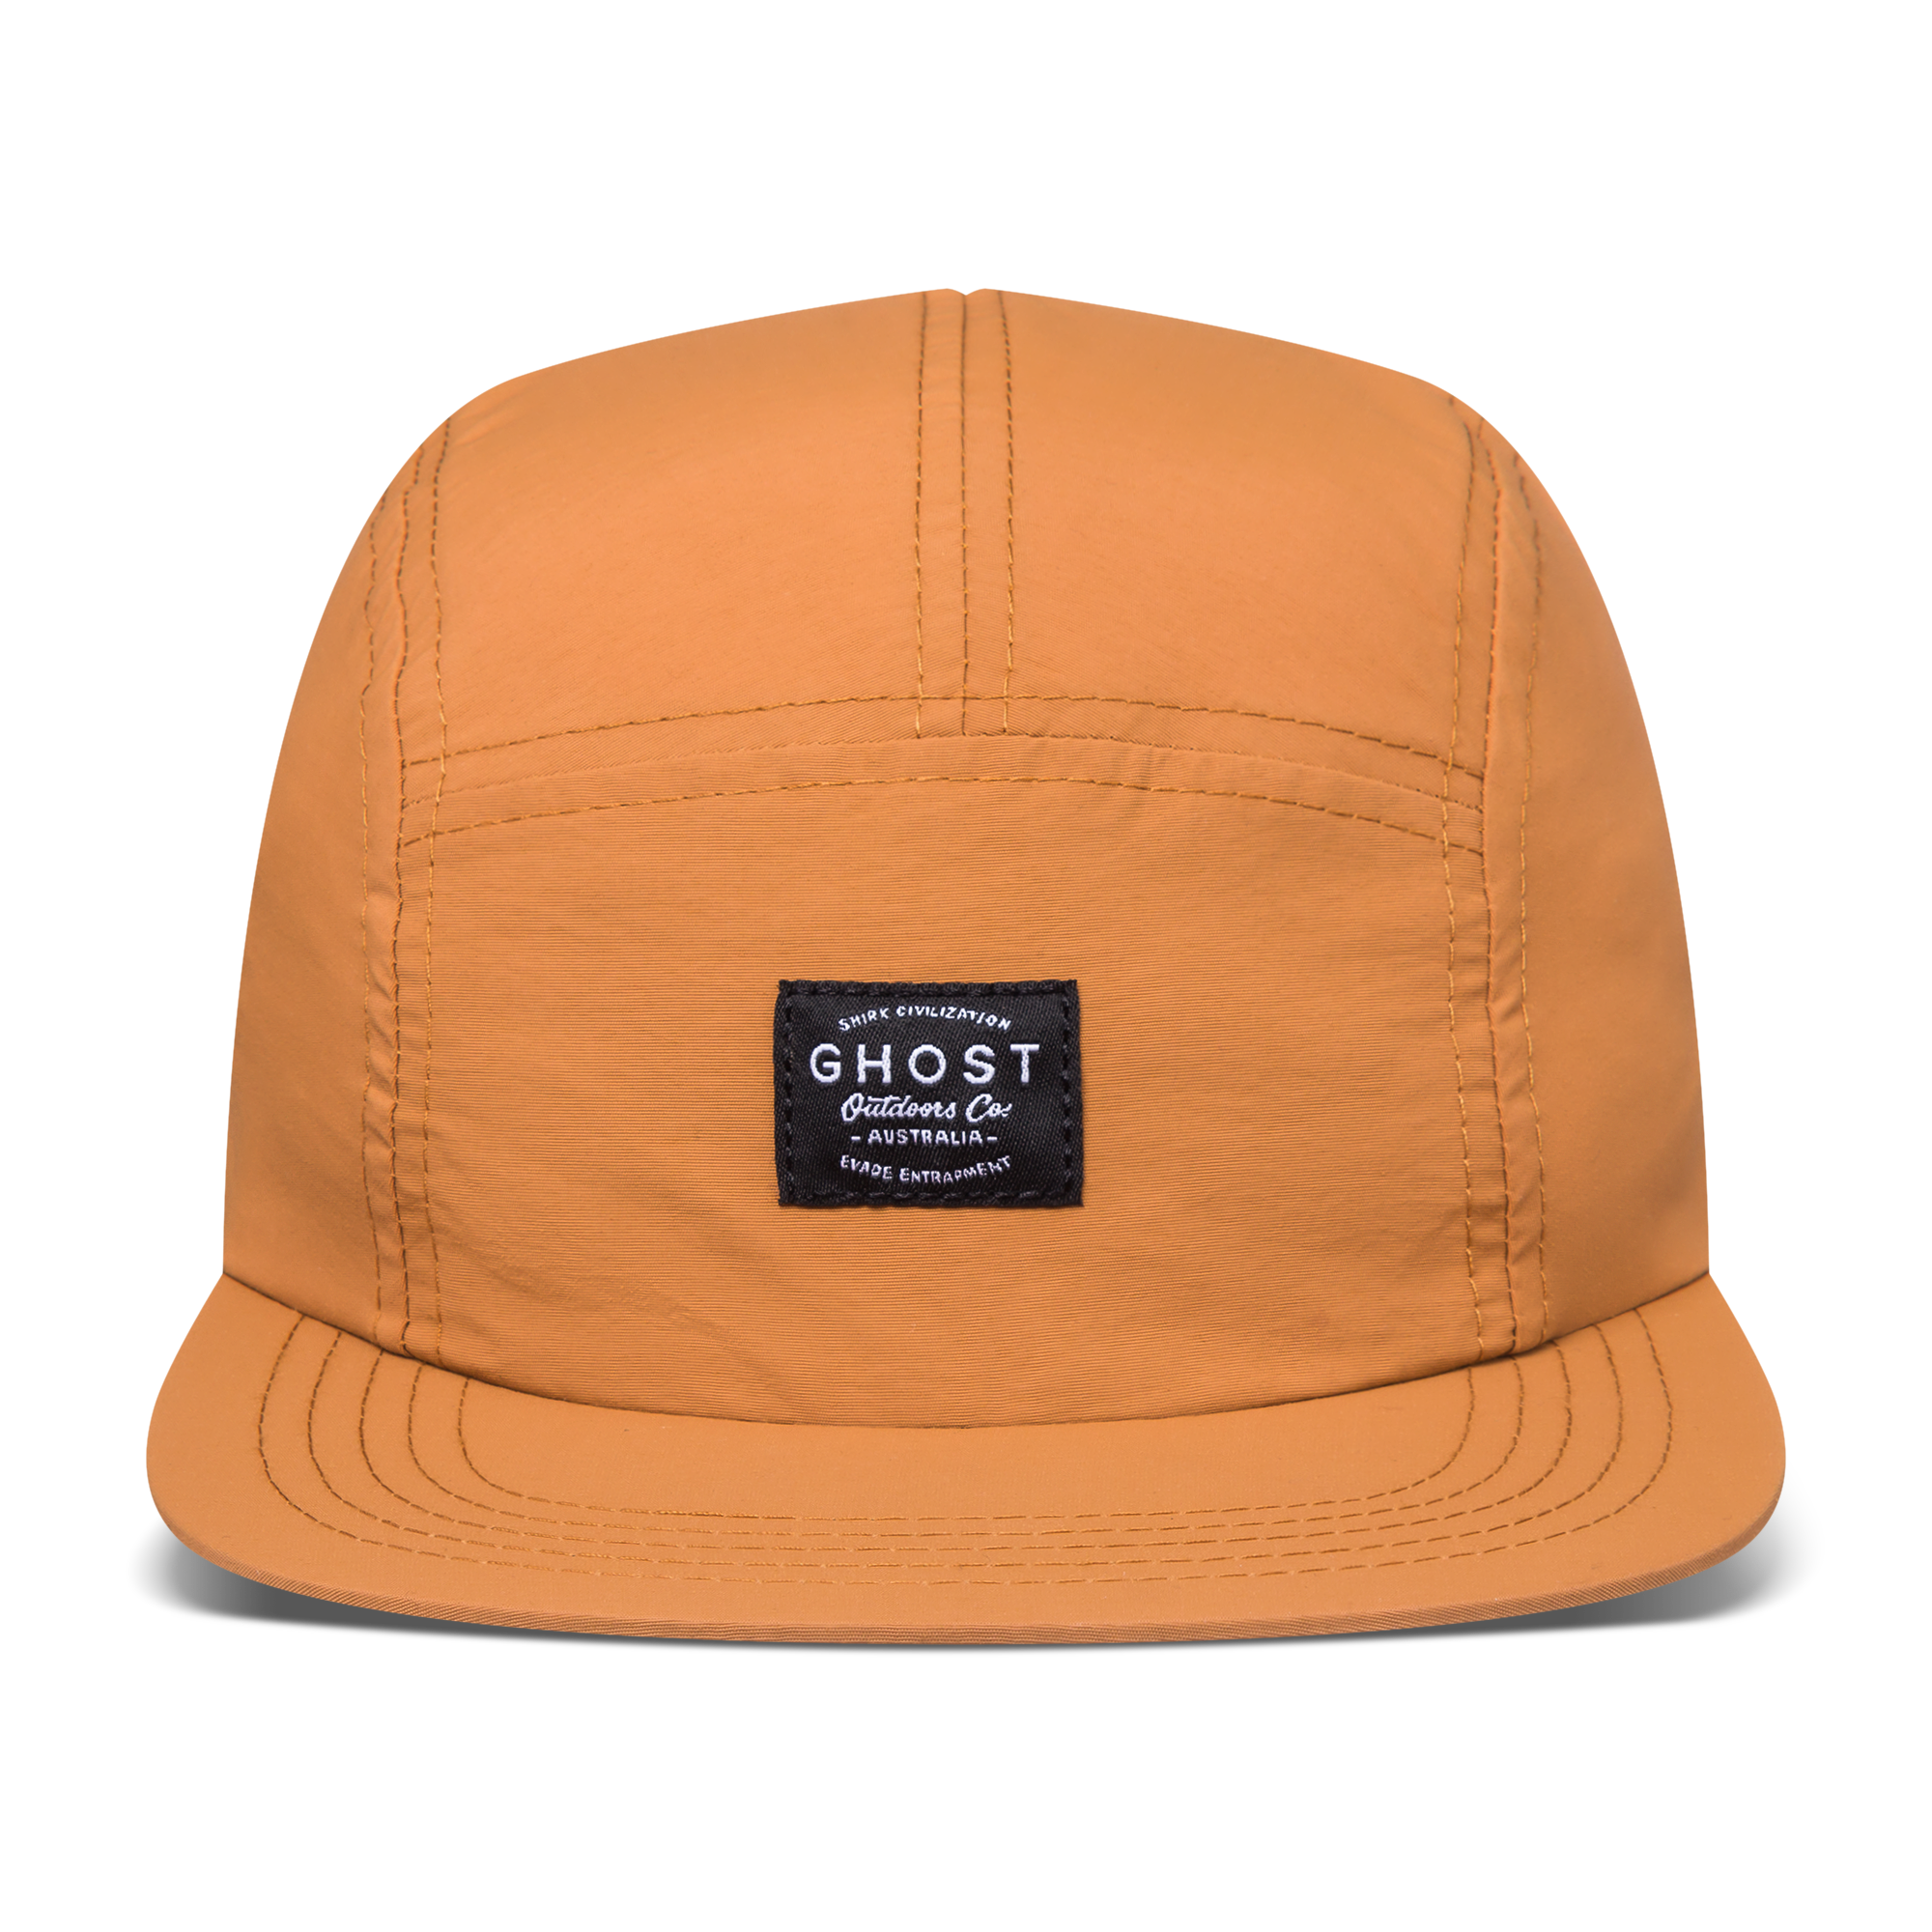 Hats product image